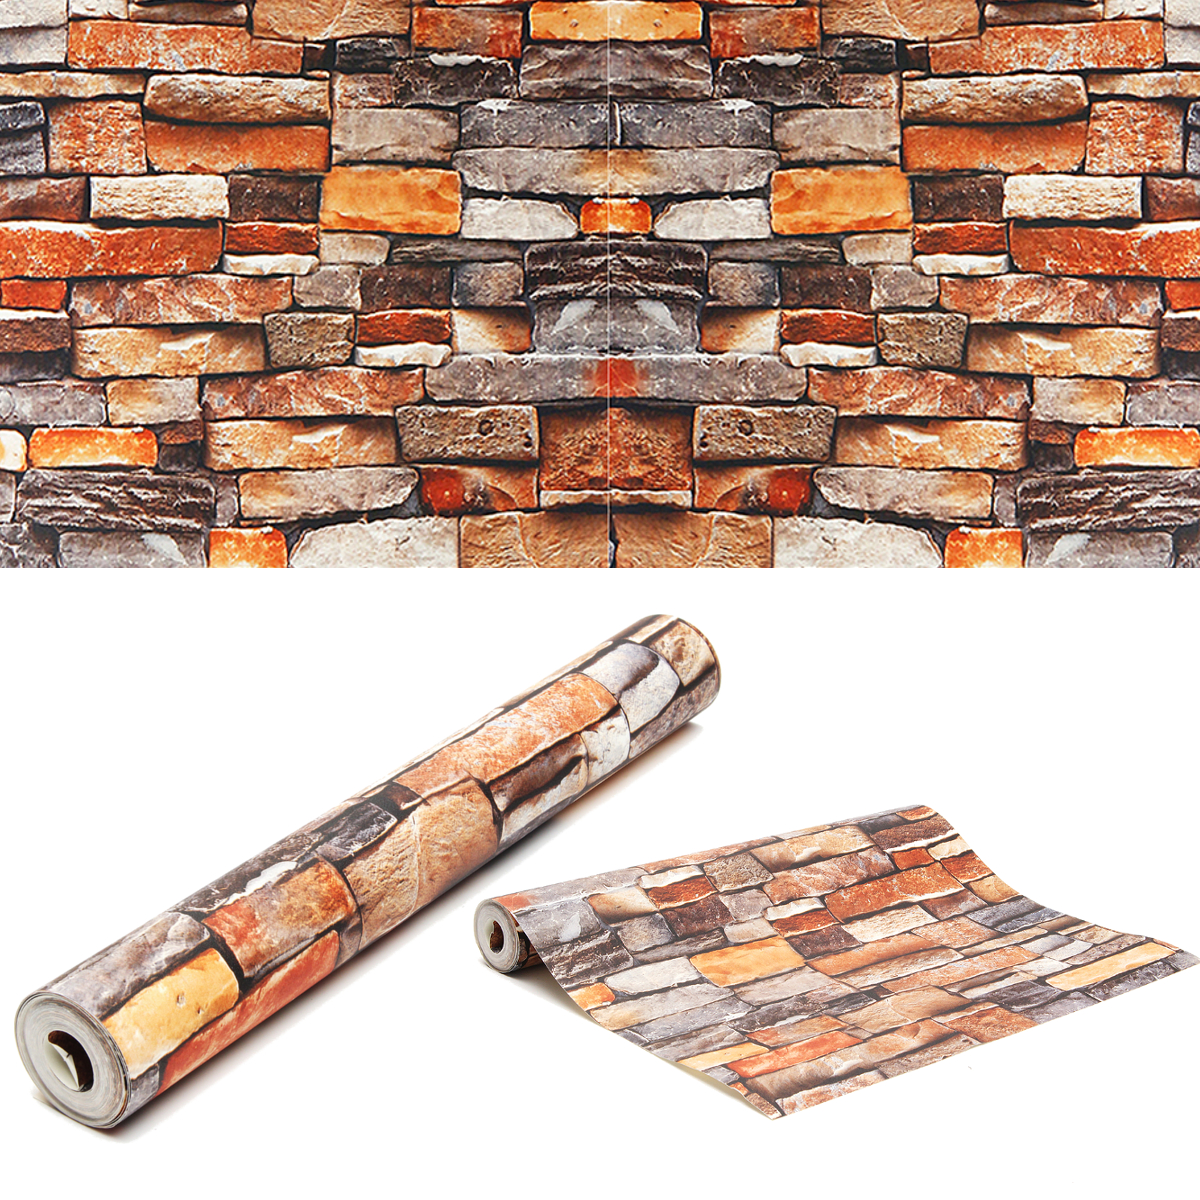 Retro 3D Brick Wallpaper Roll Rustic Vintage Vinyl Old Stone Wall Paper For Home Living Room Restaurant Cafe Decor 0.53x9.5m shinehome sunflower bloom retro wallpaper for 3d rooms walls wallpapers for 3 d living room home wall paper murals mural roll